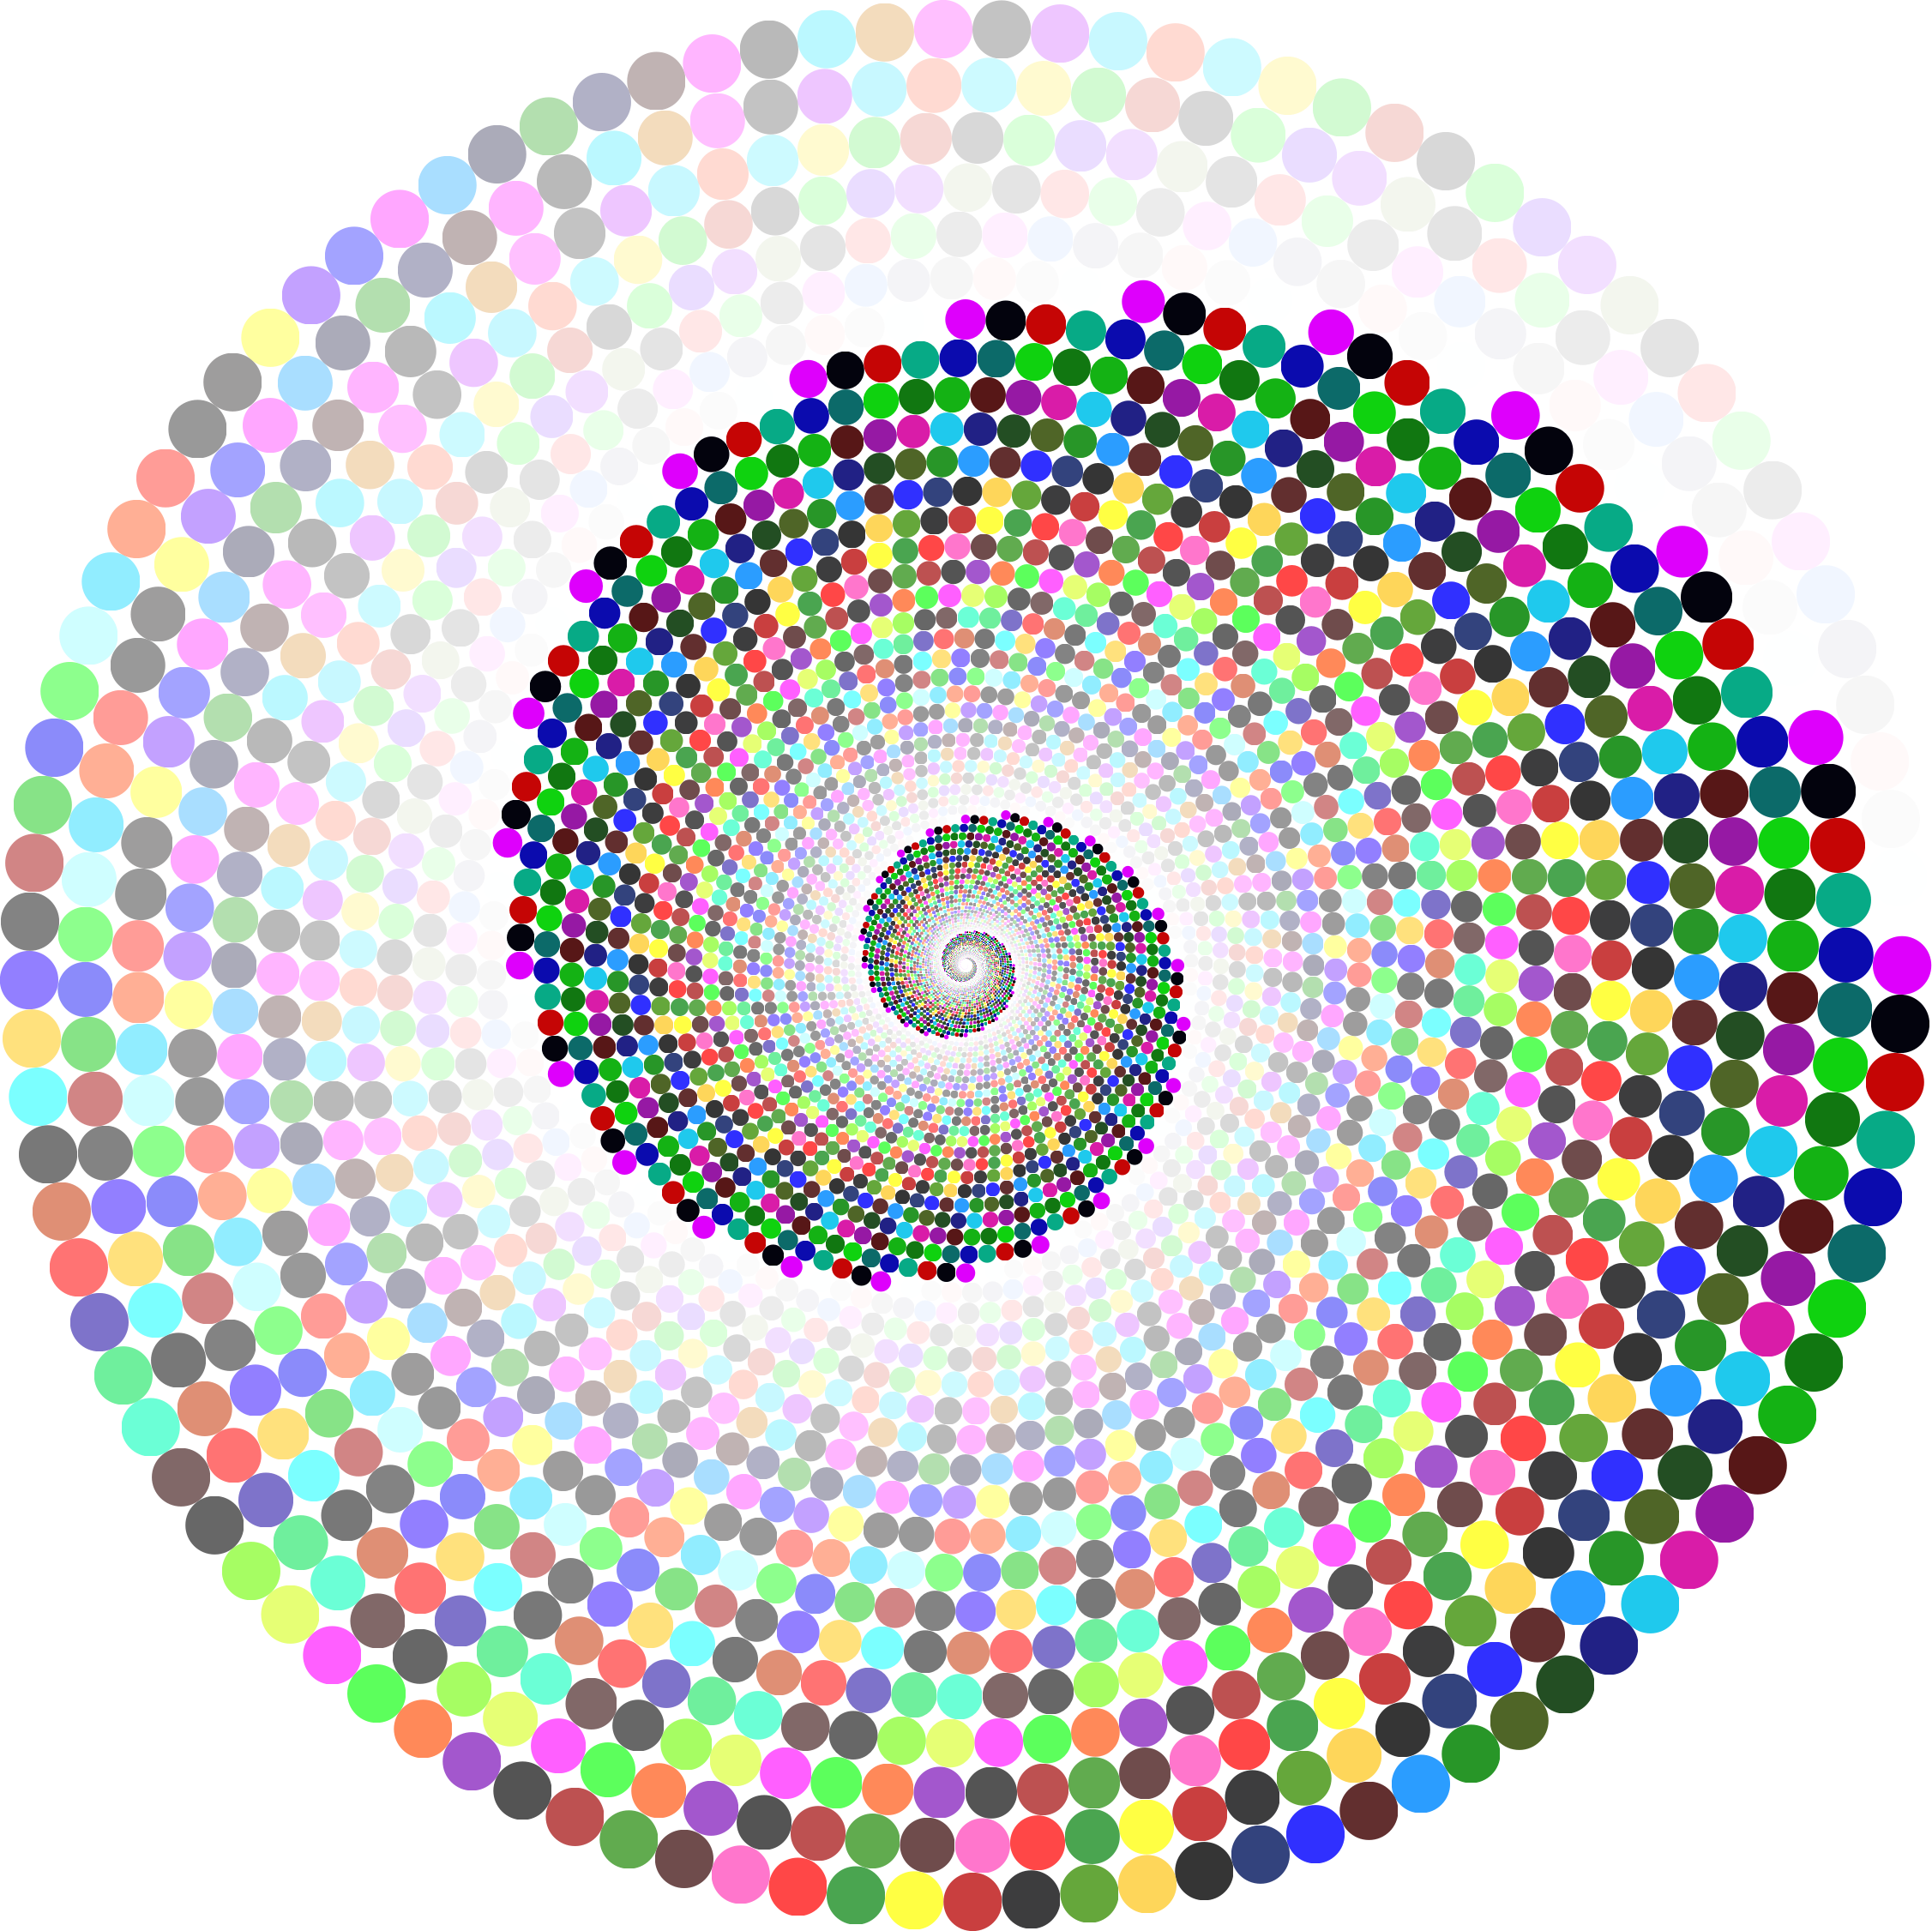 Transparent spiral colorful. Clipart swirling circles vortex